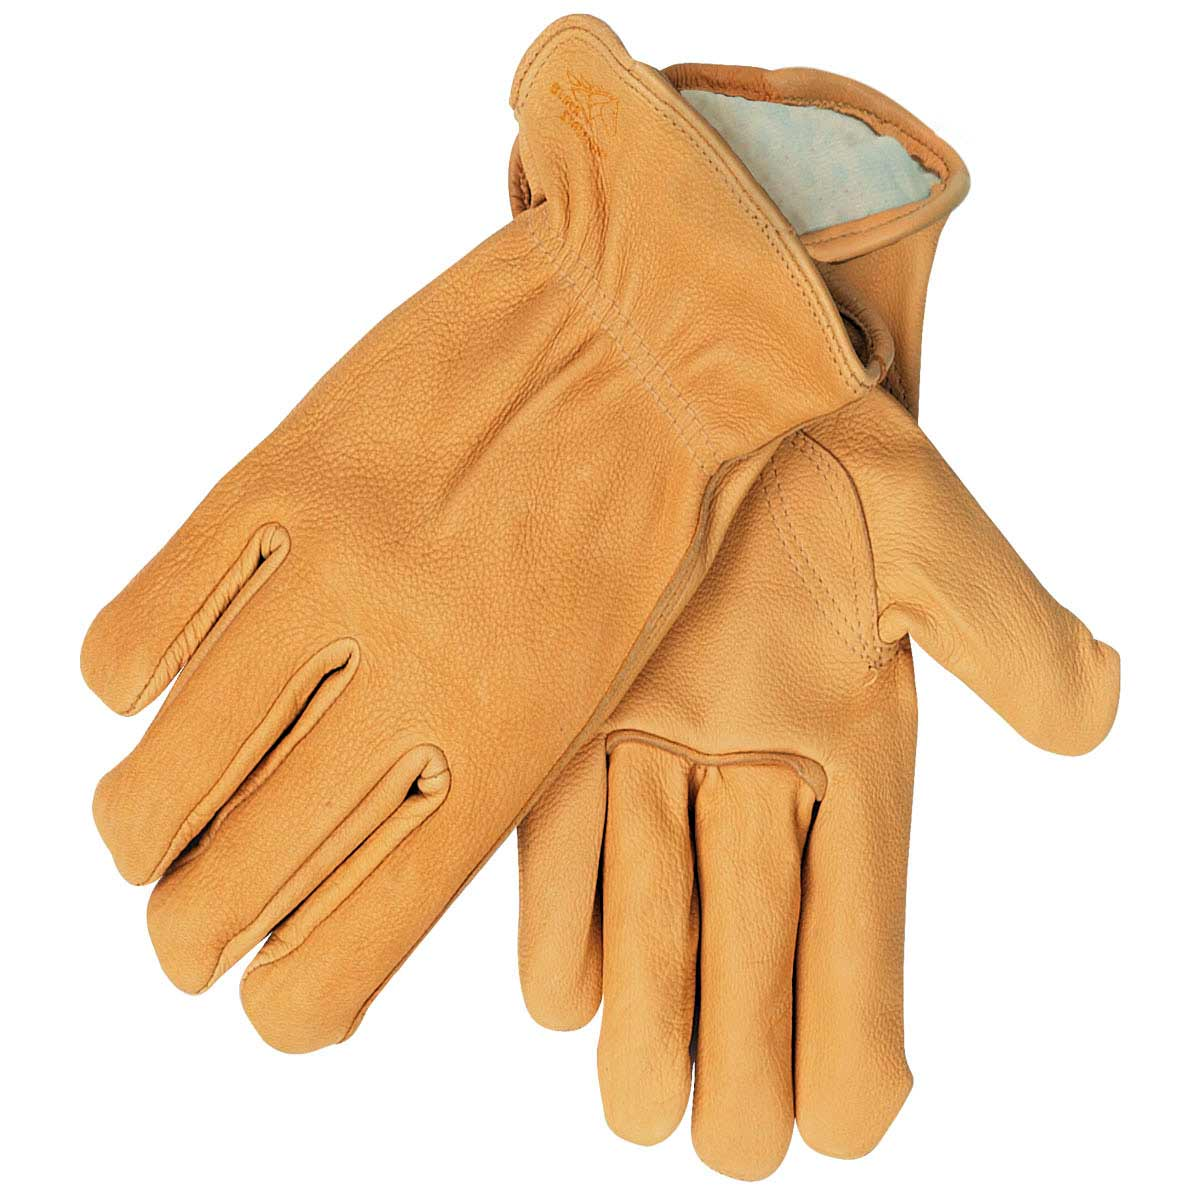 GRAIN ELKSKIN - THINSULATE INSULATED DRIVER'S STYLE GLOVES. Pack 6. X Large. I17TXL